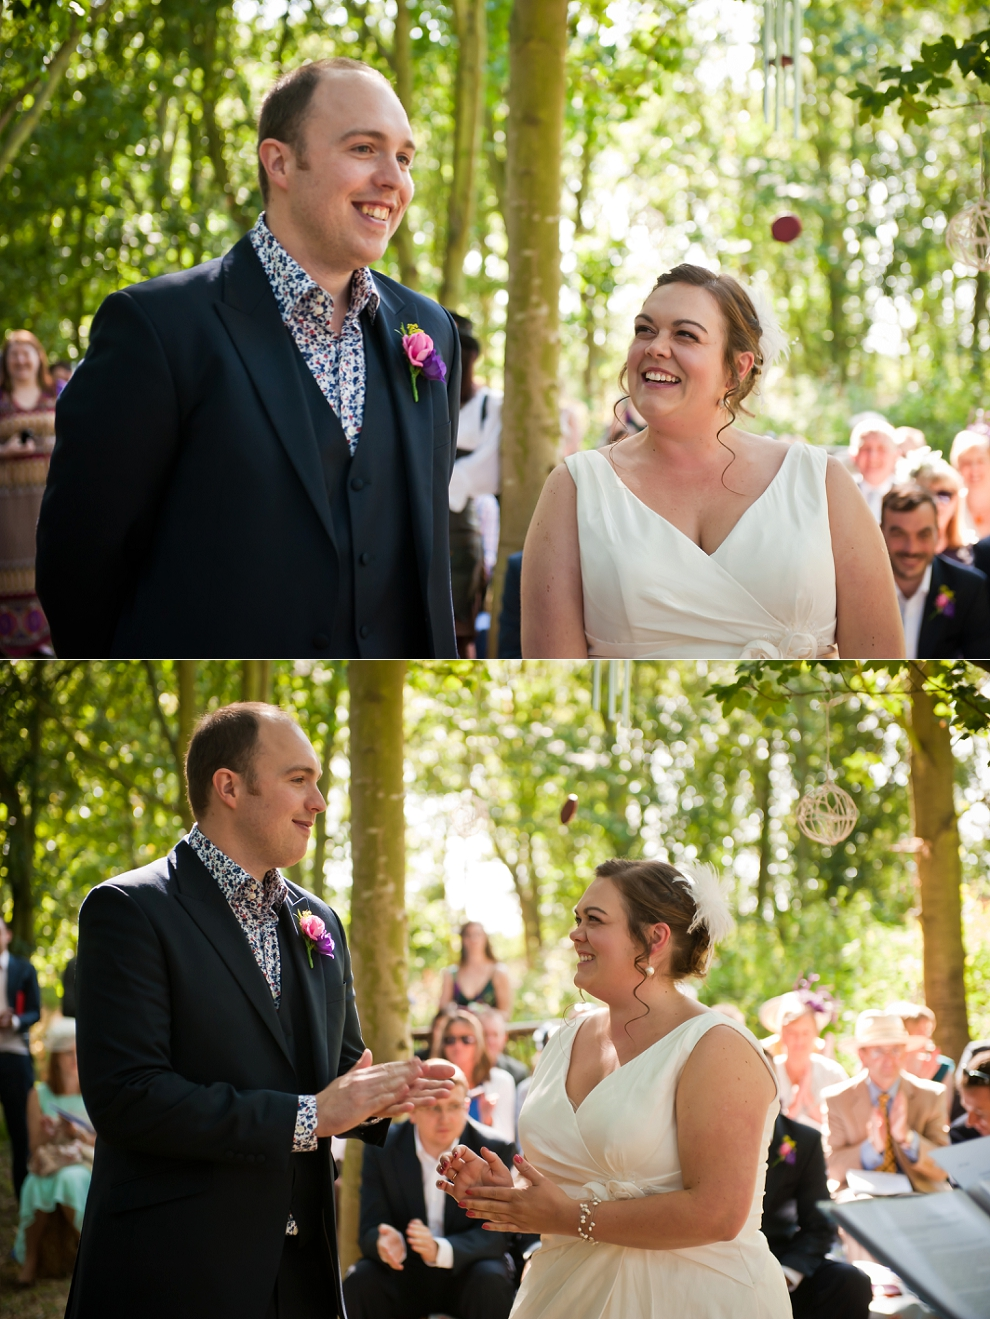 Rickety-Barn-Cambridgeshire-Wedding-Penny-Ben-24